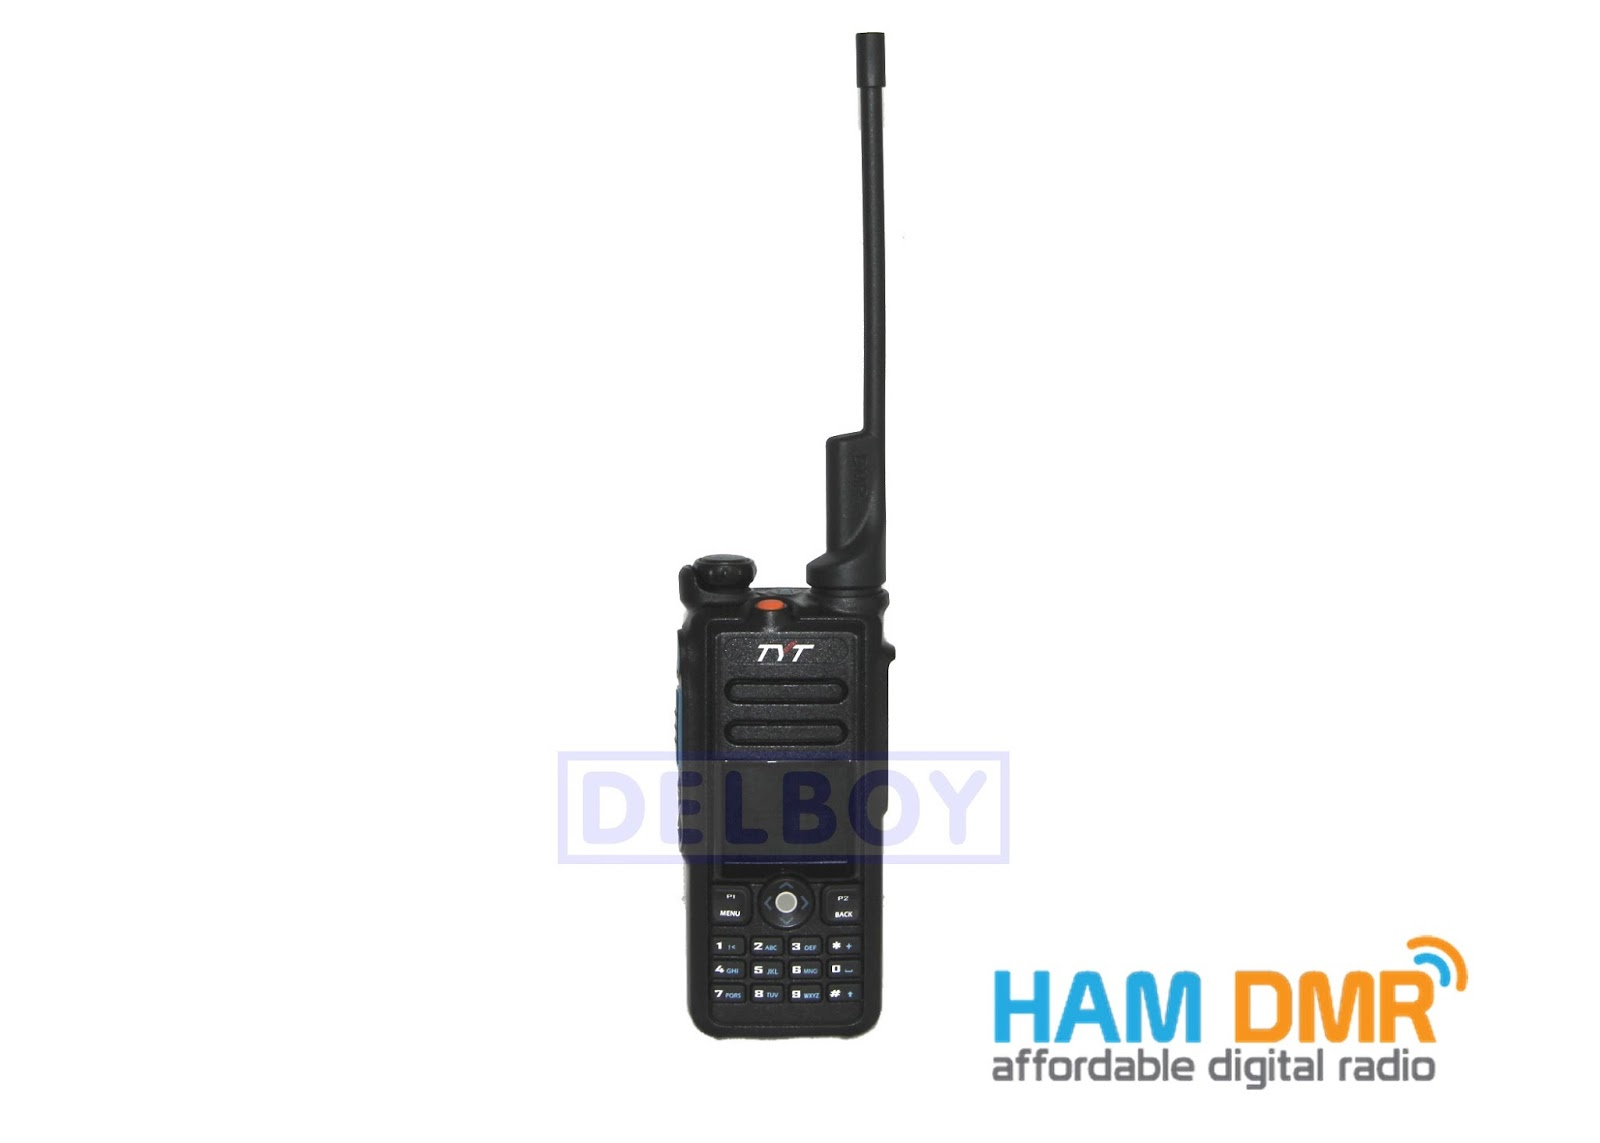 370481683986 moreover 1751463 32612154204 moreover grapevineamateurradio further Item in addition Preview Baofeng Uv 5r. on tyt dual band ham radio